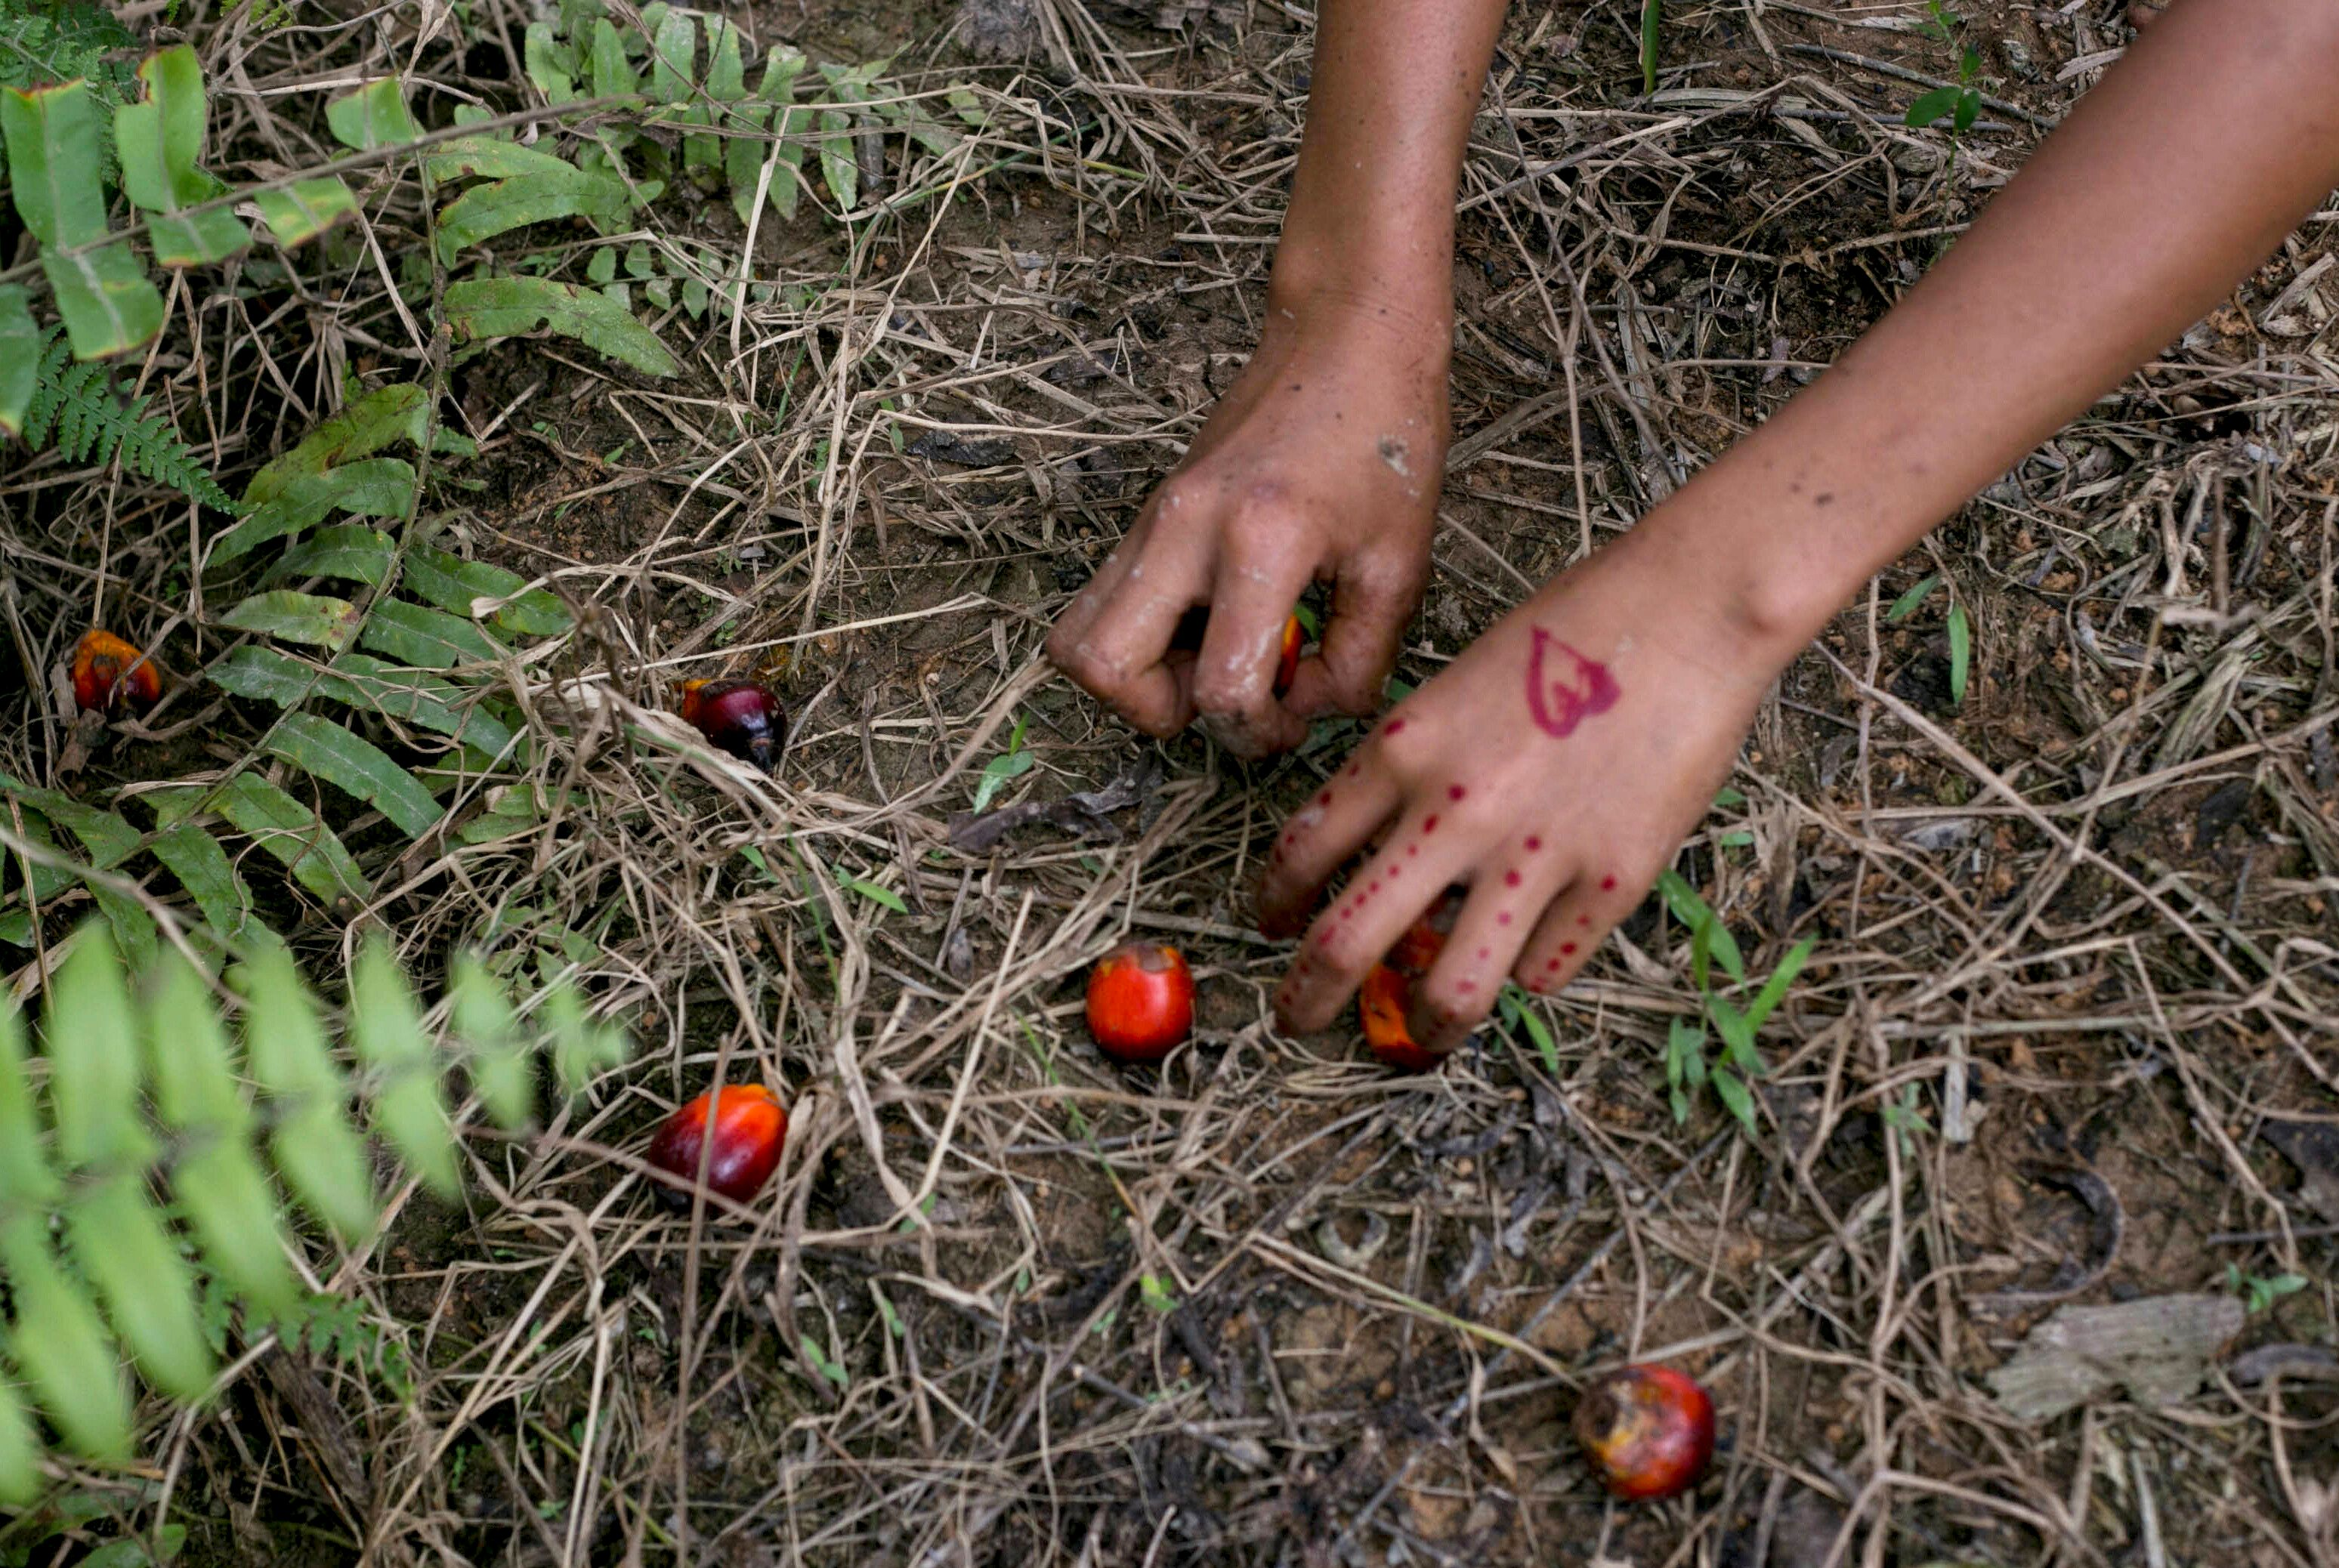 A child collects palm kernels from the ground at a palm oil plantation in Sumatra, Indonesia. Indonesia is the world's larges